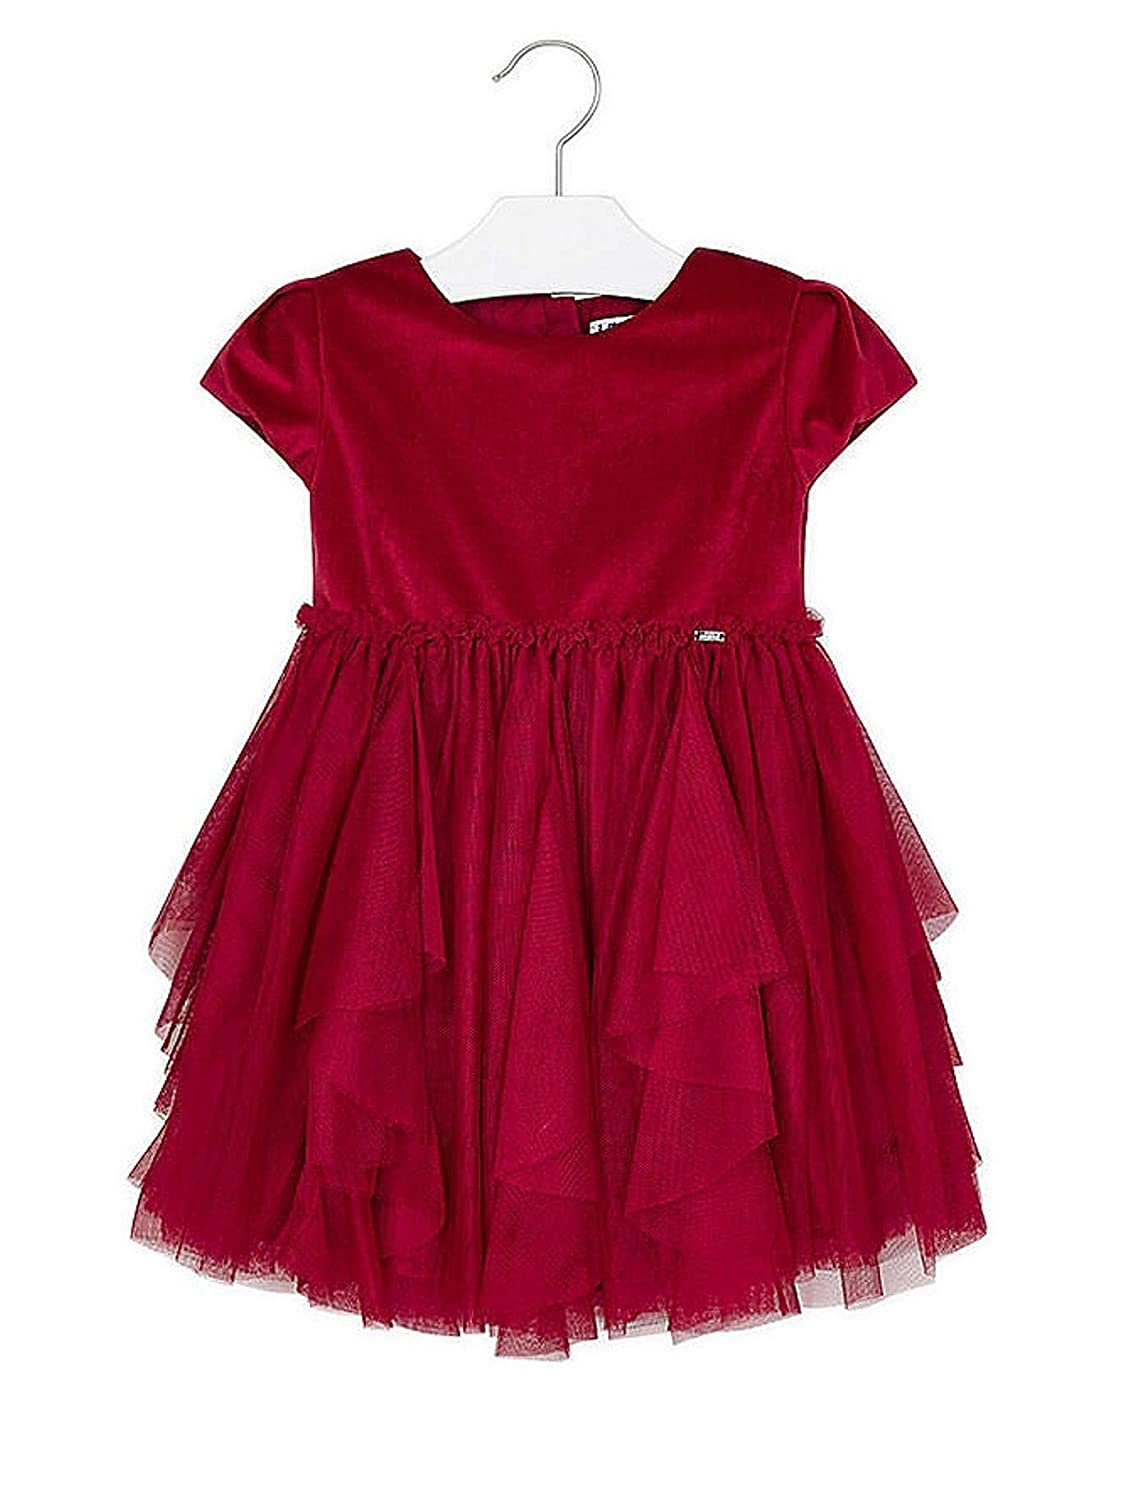 Mayoral - Robe Tulle pour Fille - 4924, Rouge